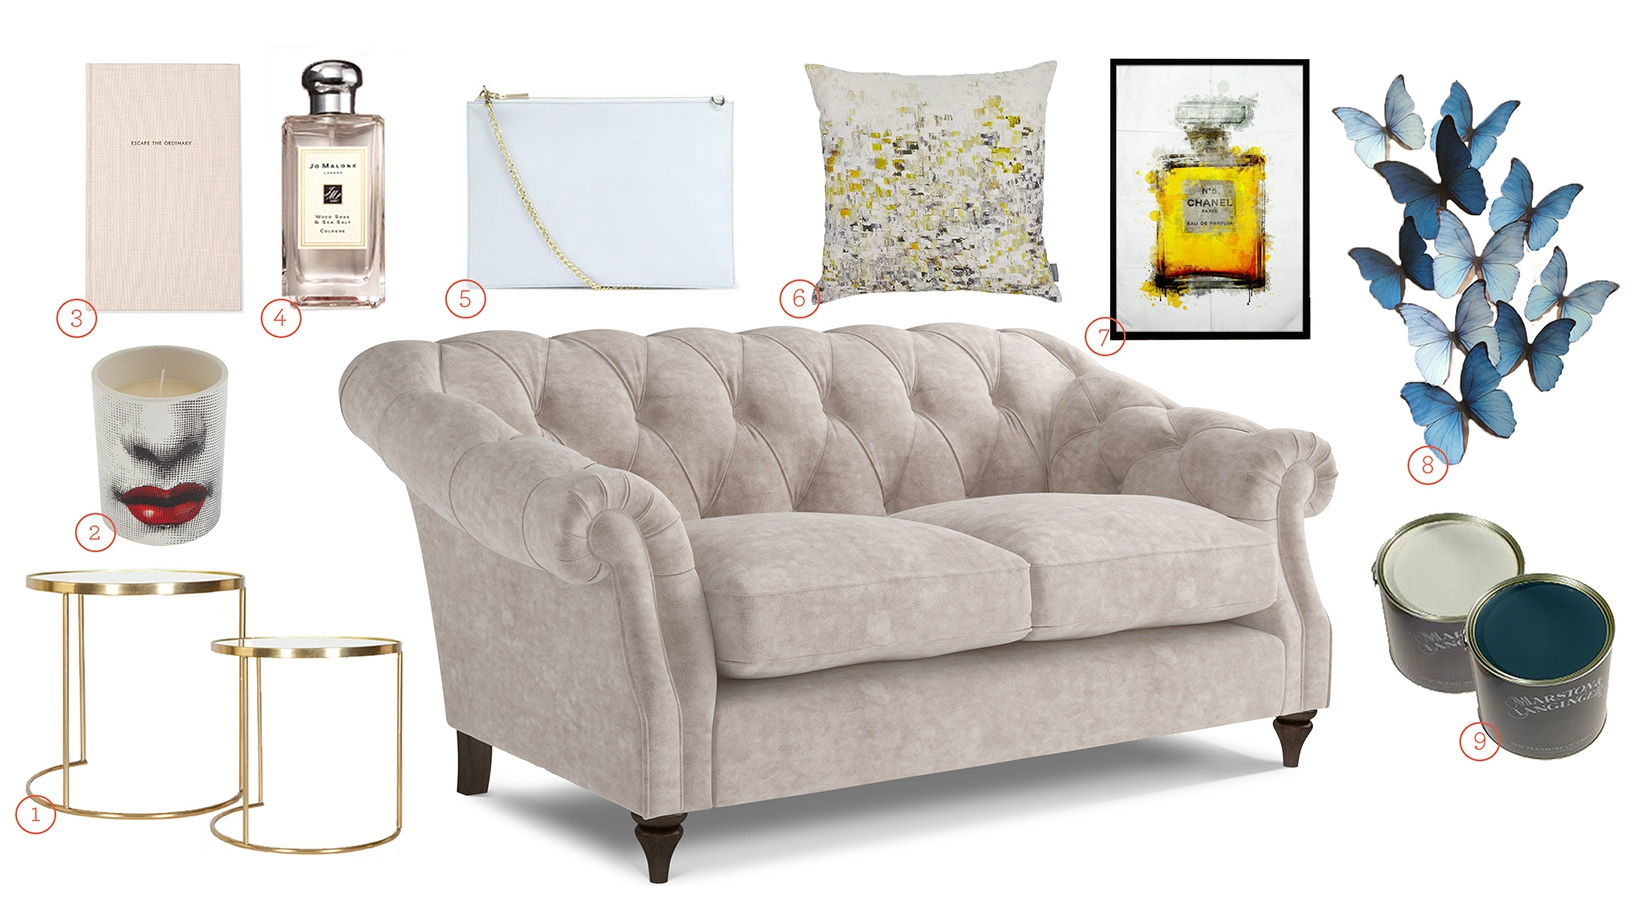 Get The Look - Darcy Sofa Houte Couture